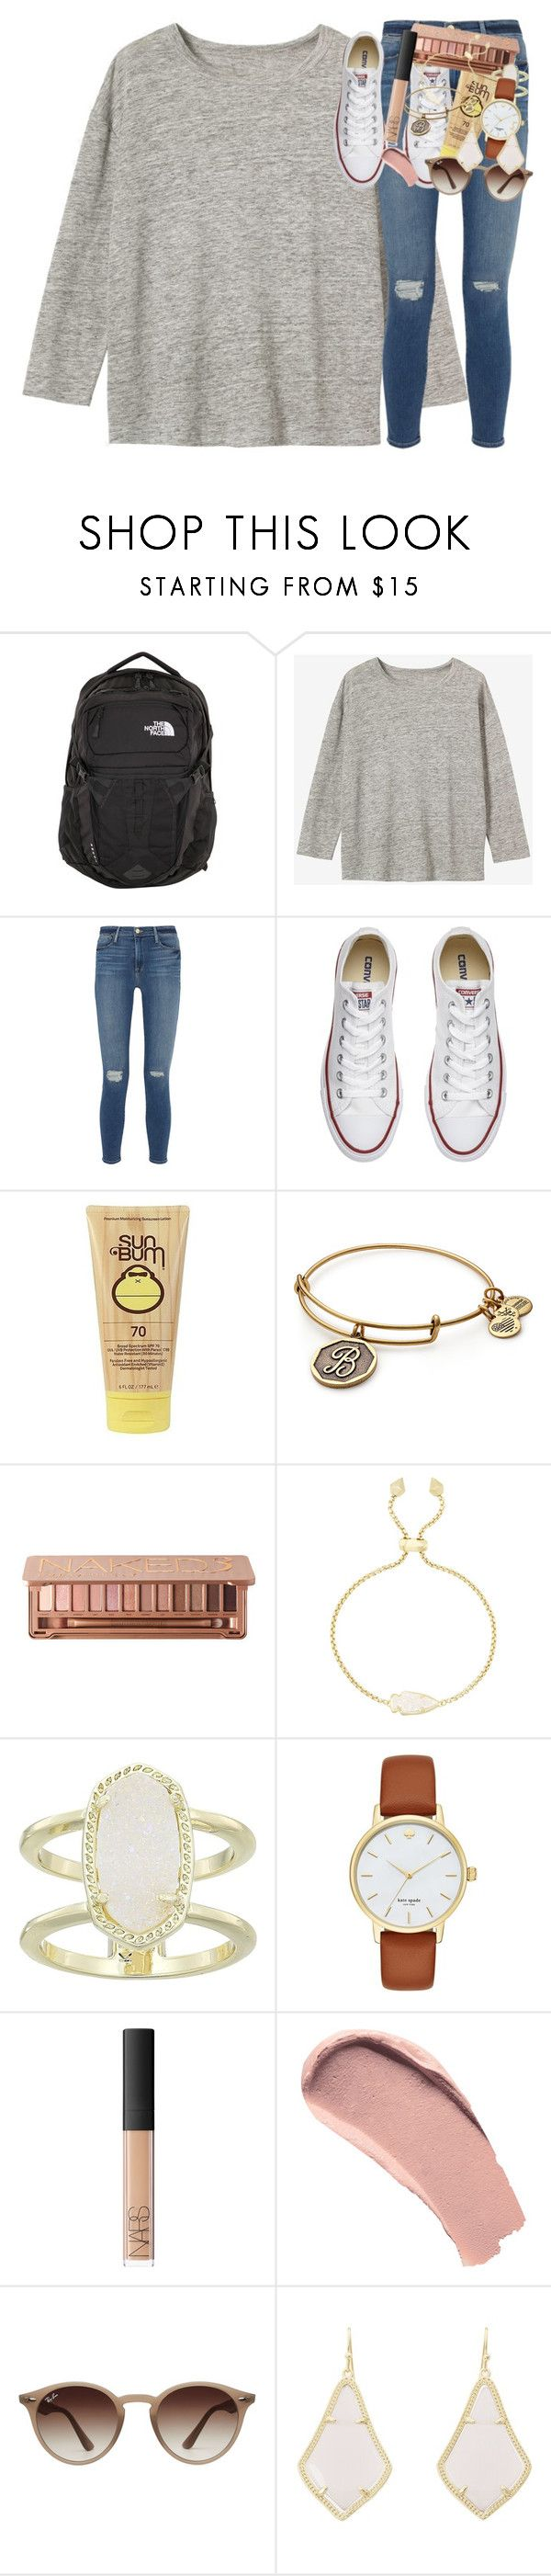 """day two: touring the city"" by classynsouthern ❤ liked on Polyvore featuring The North Face, Frame, Converse, Sun Bum, Alex and Ani, Kendra Scott, Kate Spade, NARS Cosmetics, Burberry and Ray-Ban"